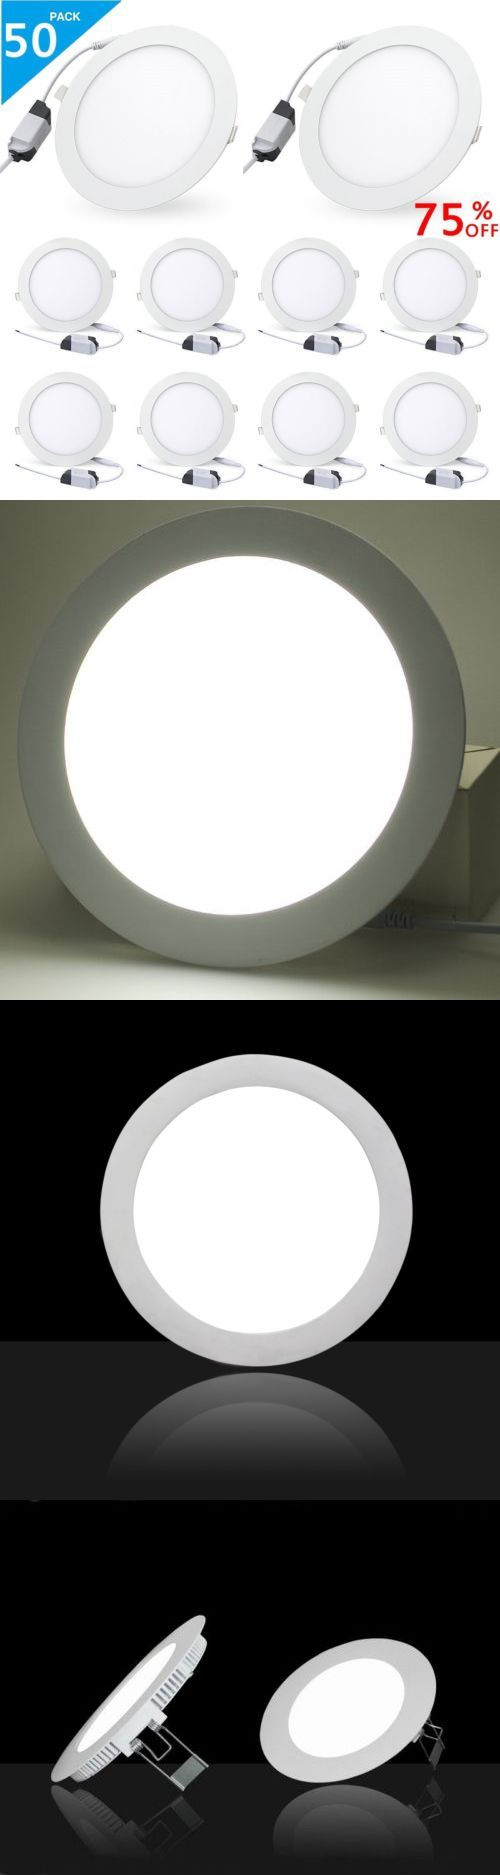 Modern Ceiling Lights Nz : The best led recessed ceiling lights ideas on